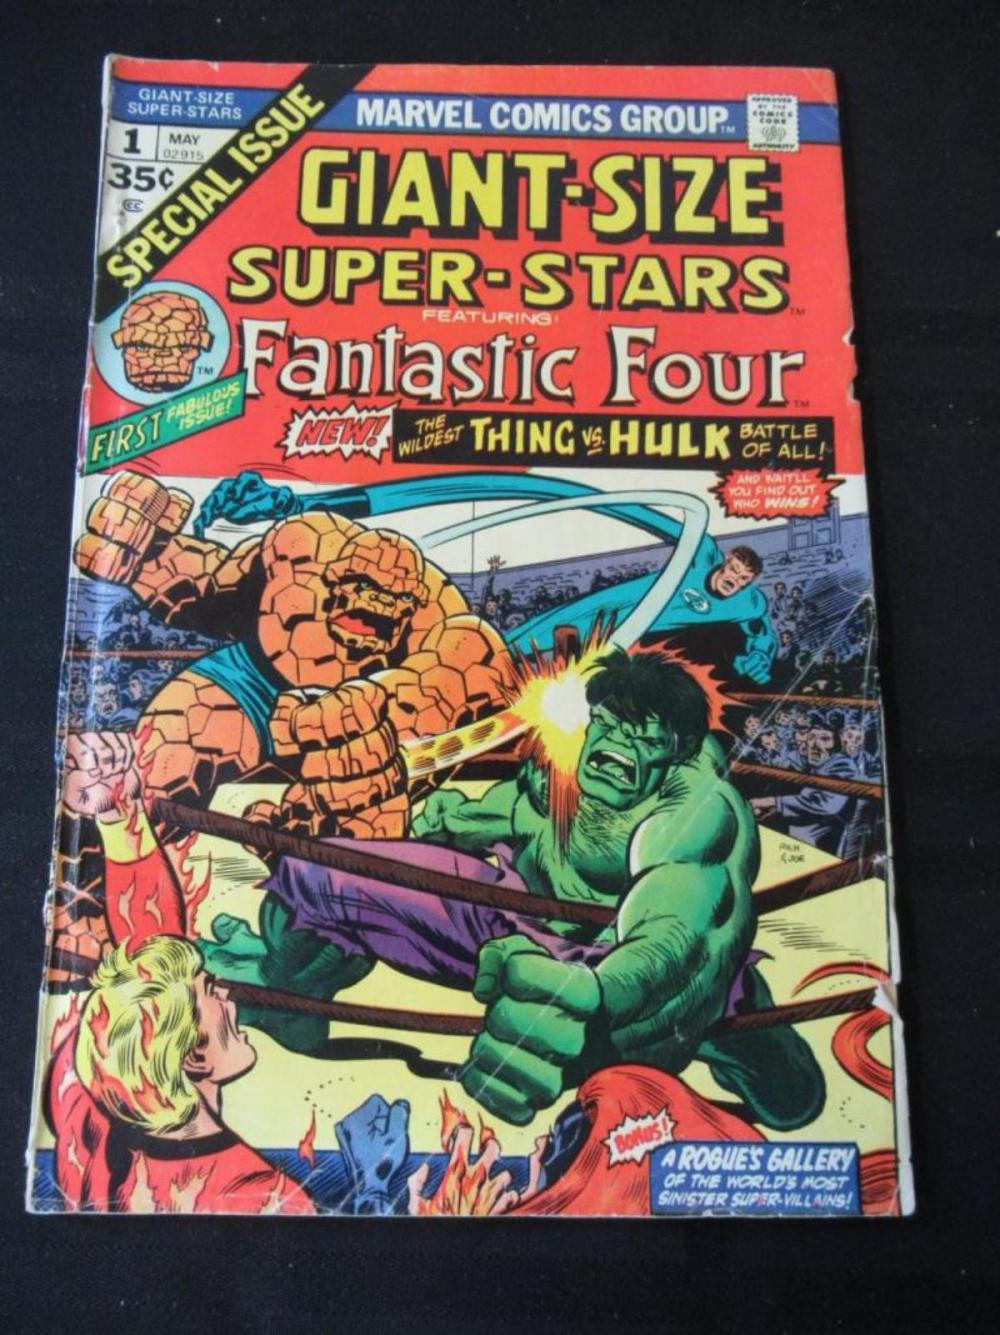 Giant Size Super-Stakes Fantastic Four #1 35c